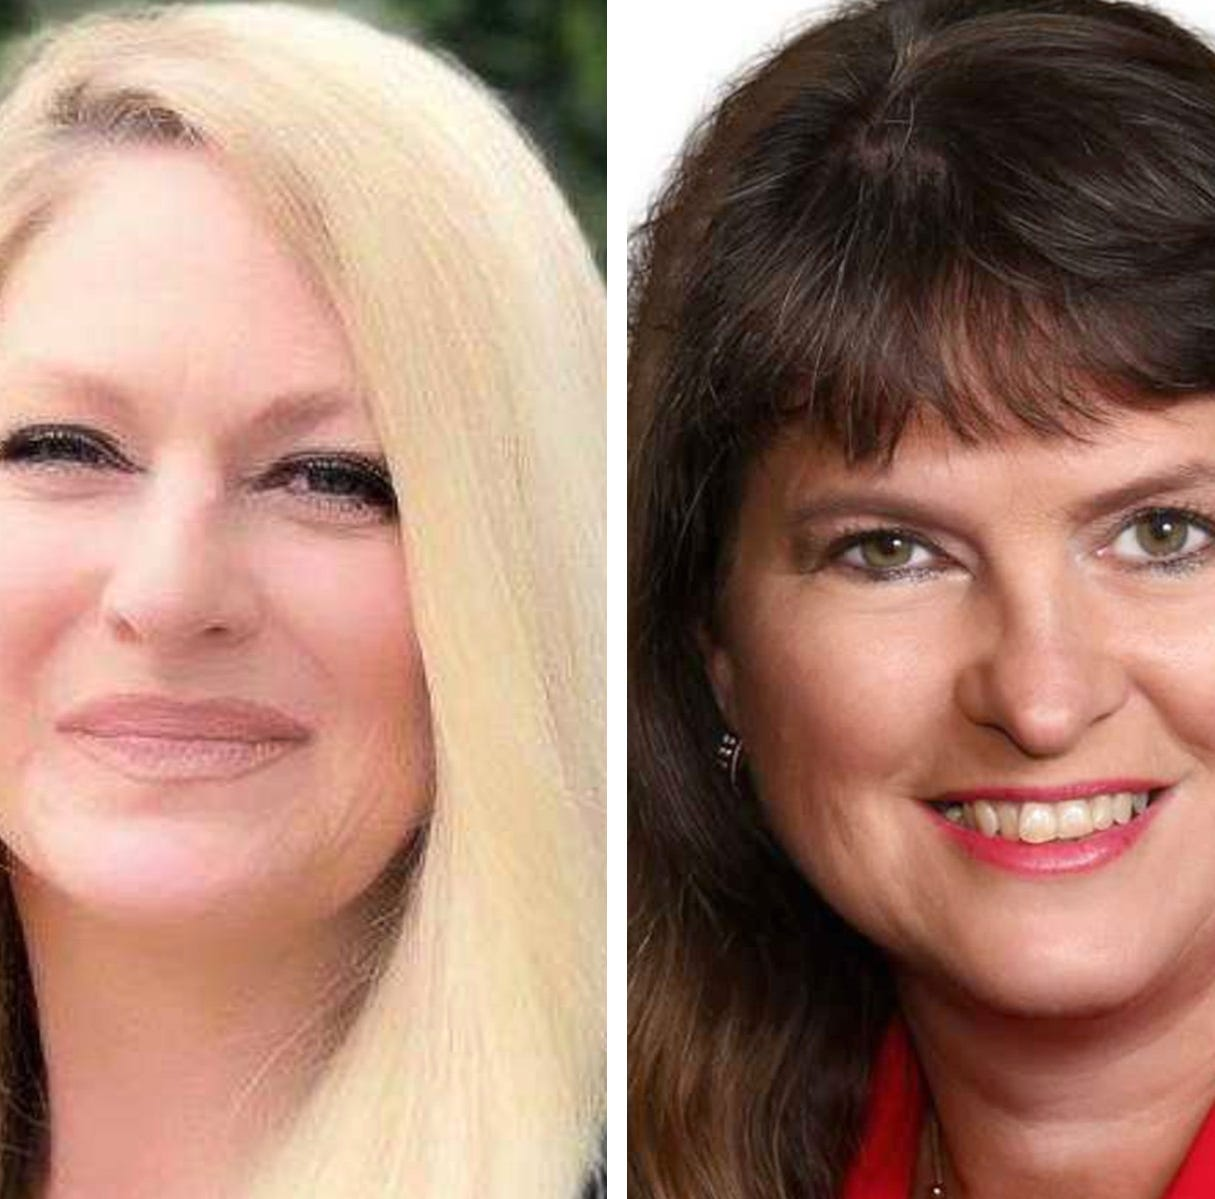 Democratic, Republican candidates face scrutiny before primary in state treasurer race